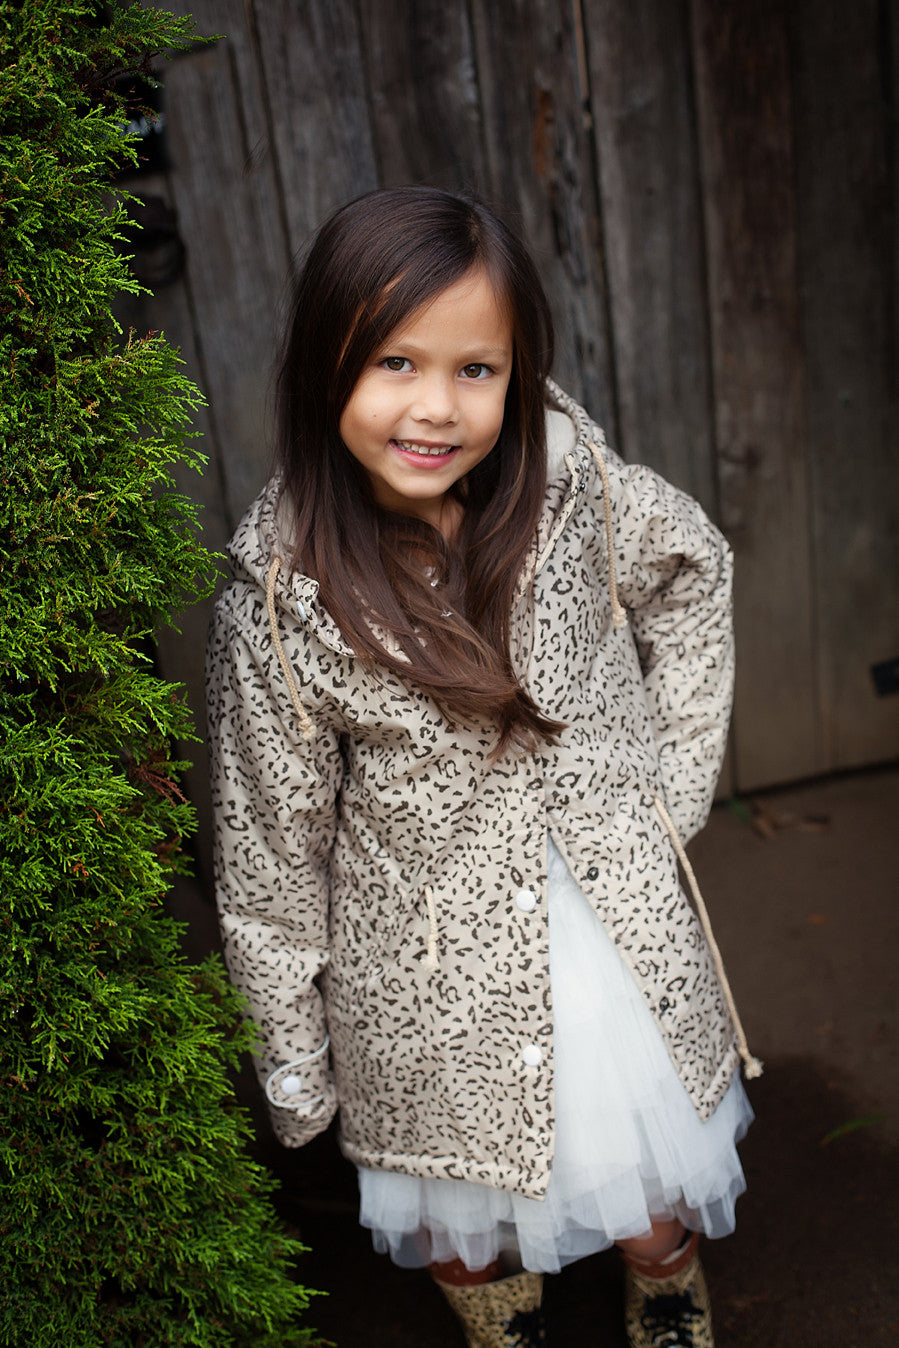 Girls Raincoat in Natural Leopard Image